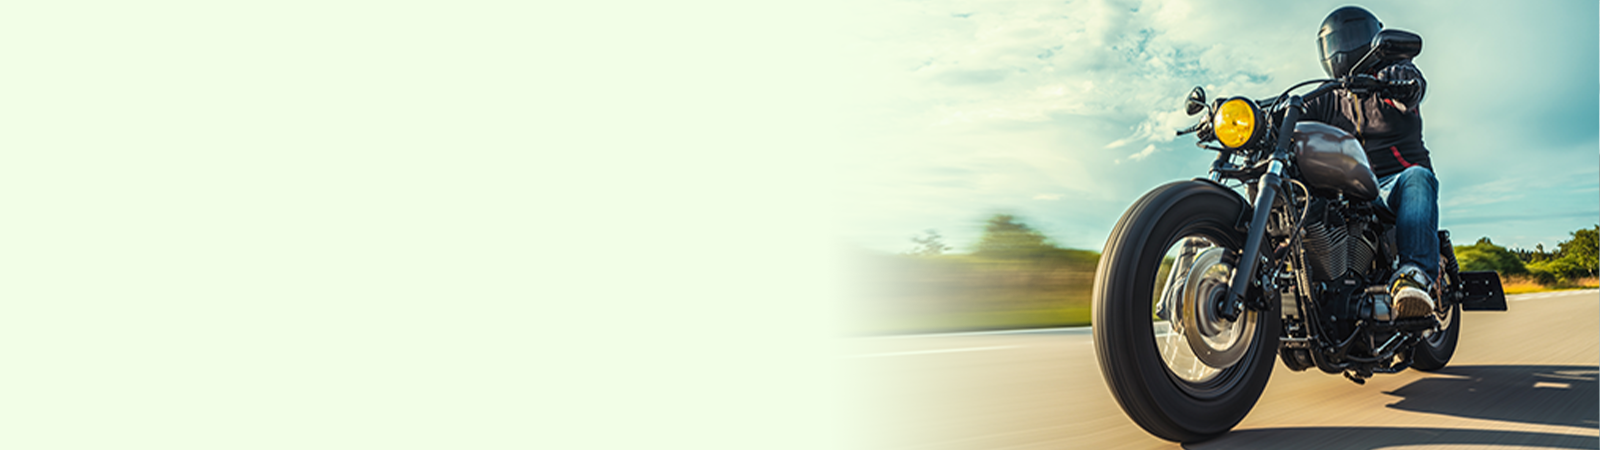 Delivered personalized customer experiences for a leading uk based motor insurance company